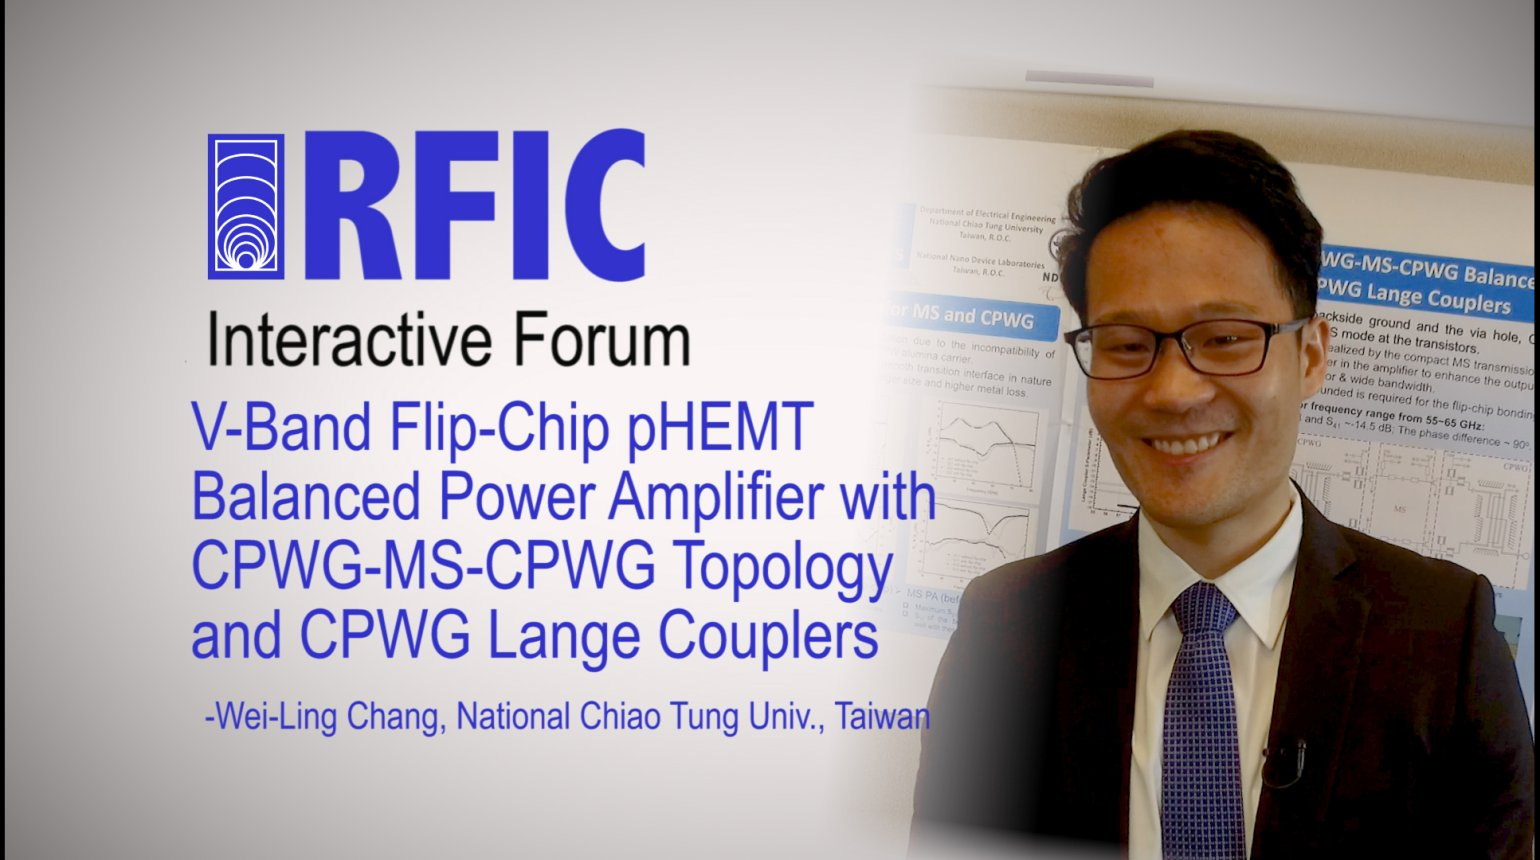 V-Band Flip-Chip pHEMT Balanced Power Amplifier with CPWG-MS-CPWG Topology and CPWG Lange Couplers: RFIC Interactive Forum 2017